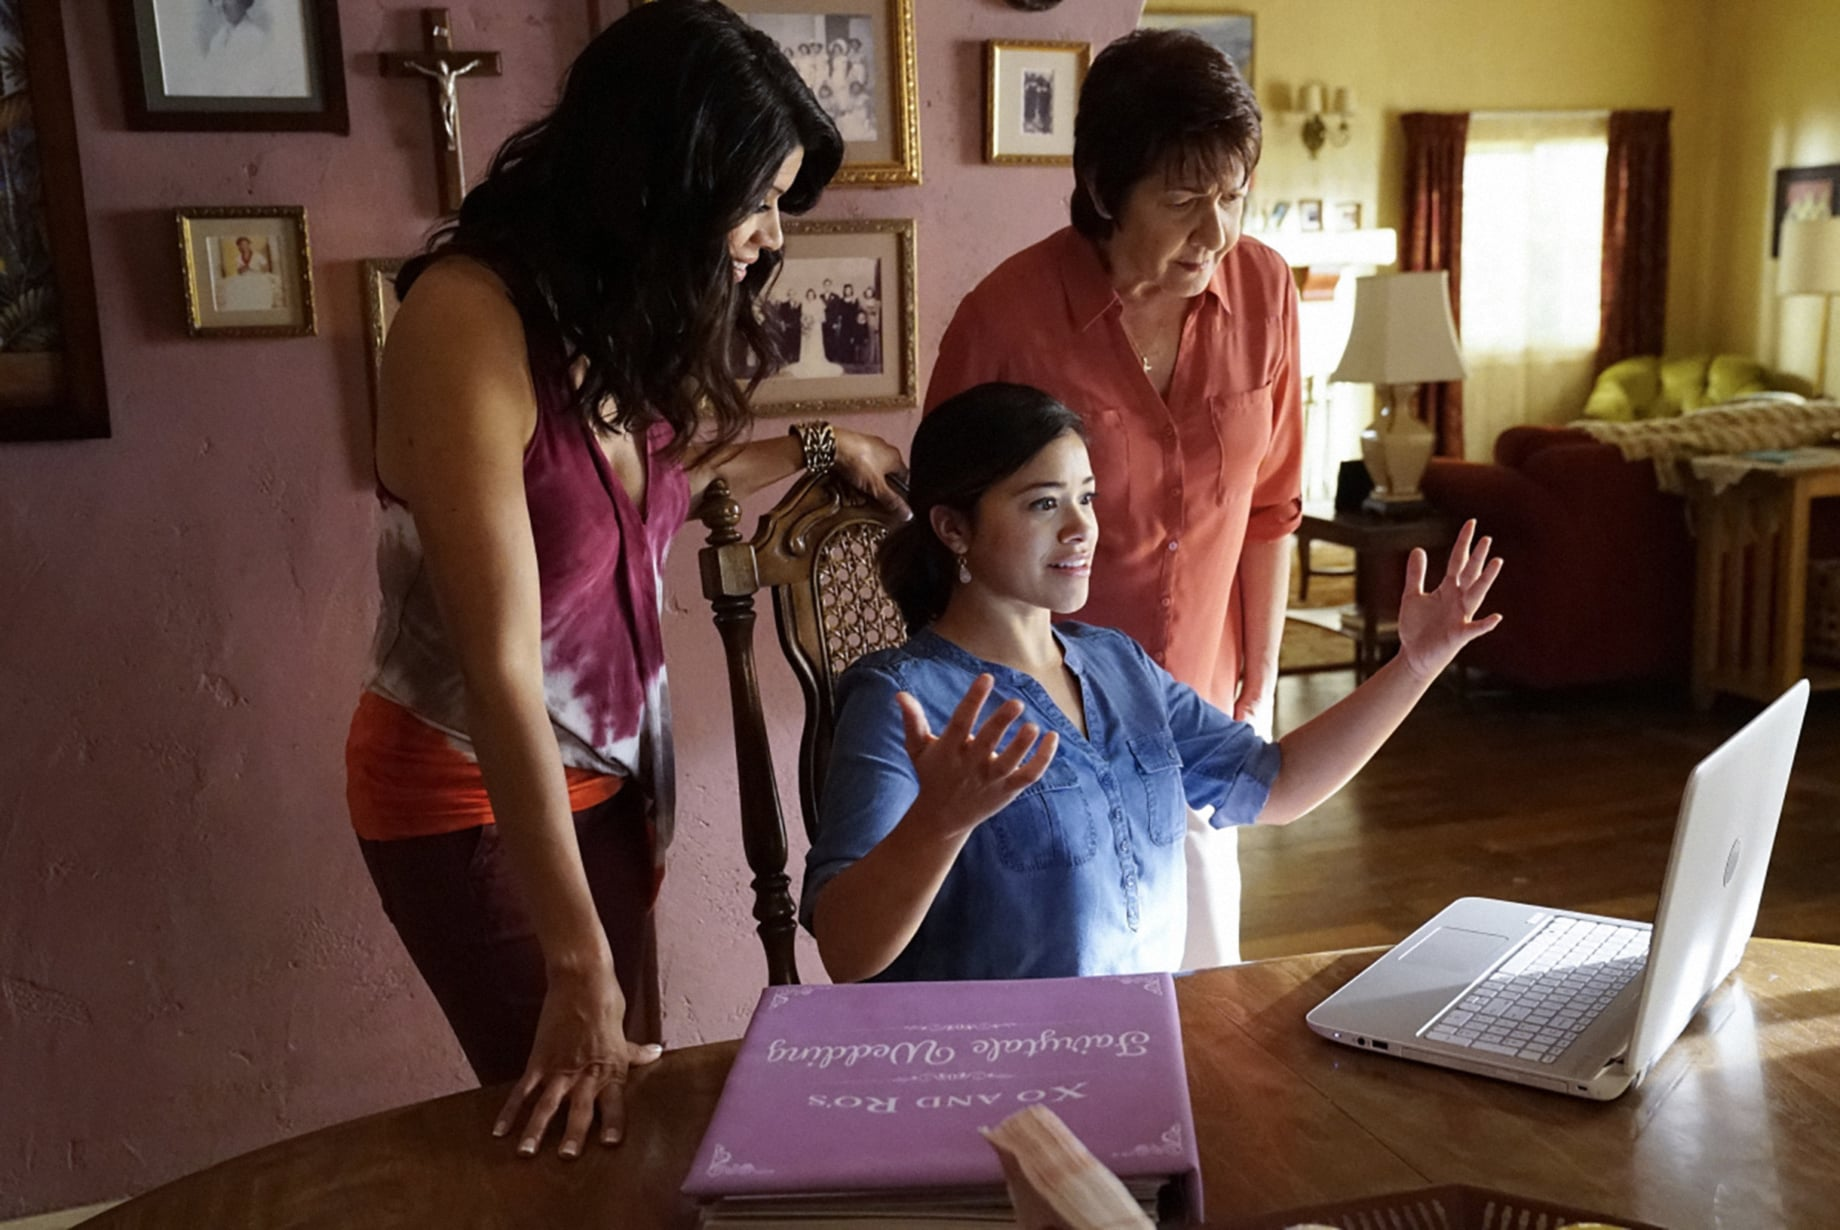 JANE THE VIRGIN, l-r: Andrea Navedo, Gina Rodriguez, Ivonne Coll in 'Chapter Sixty-Four' (Season 3, Episode 20, aired May 22, 2017). ph: Greg Gayne/The CW Network/courtesy Everett Collection